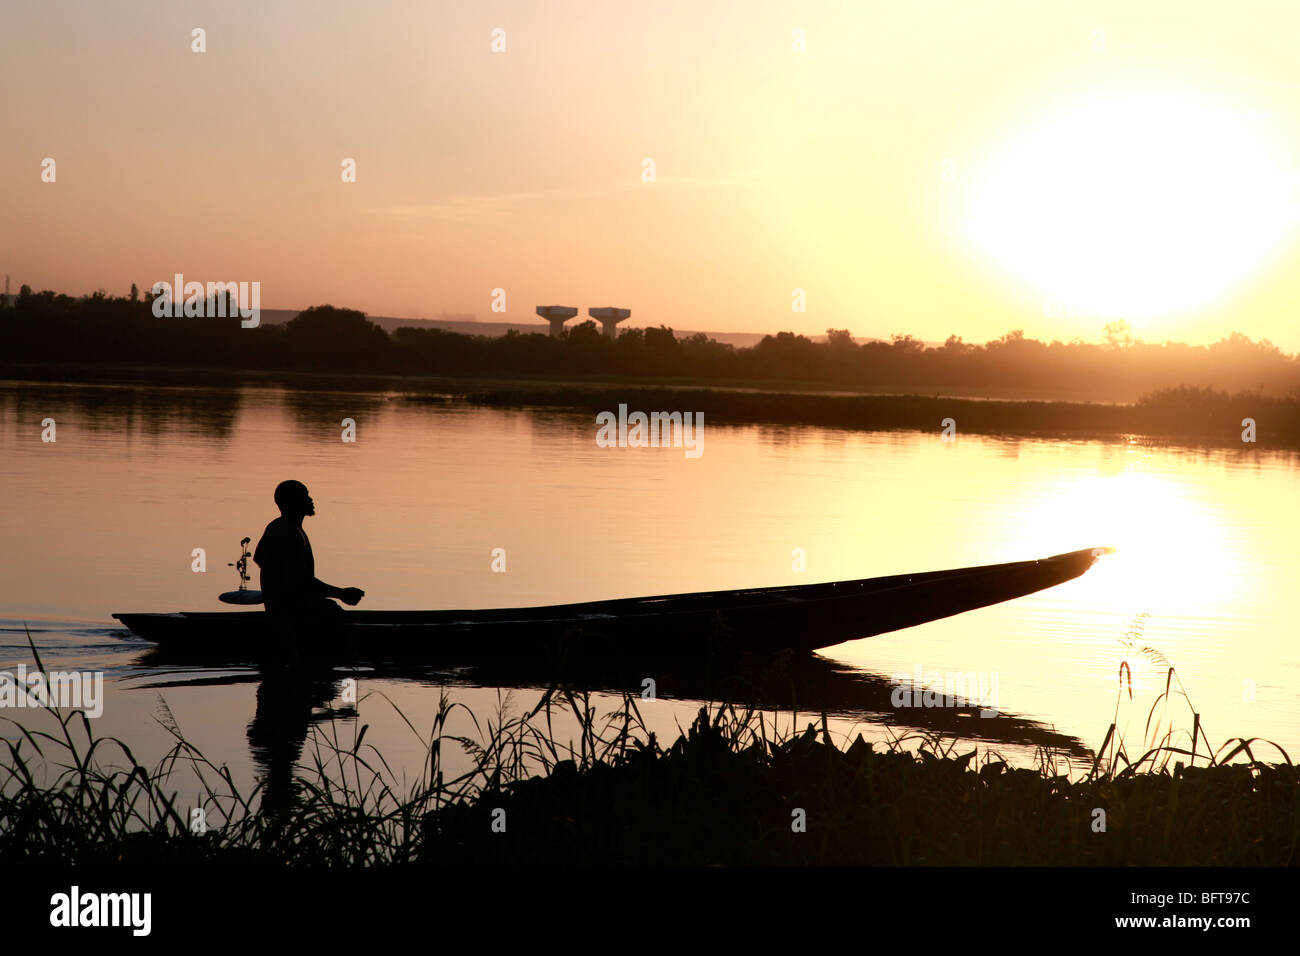 Fisherman in a small boot crossing a river at sunset - Stock Image